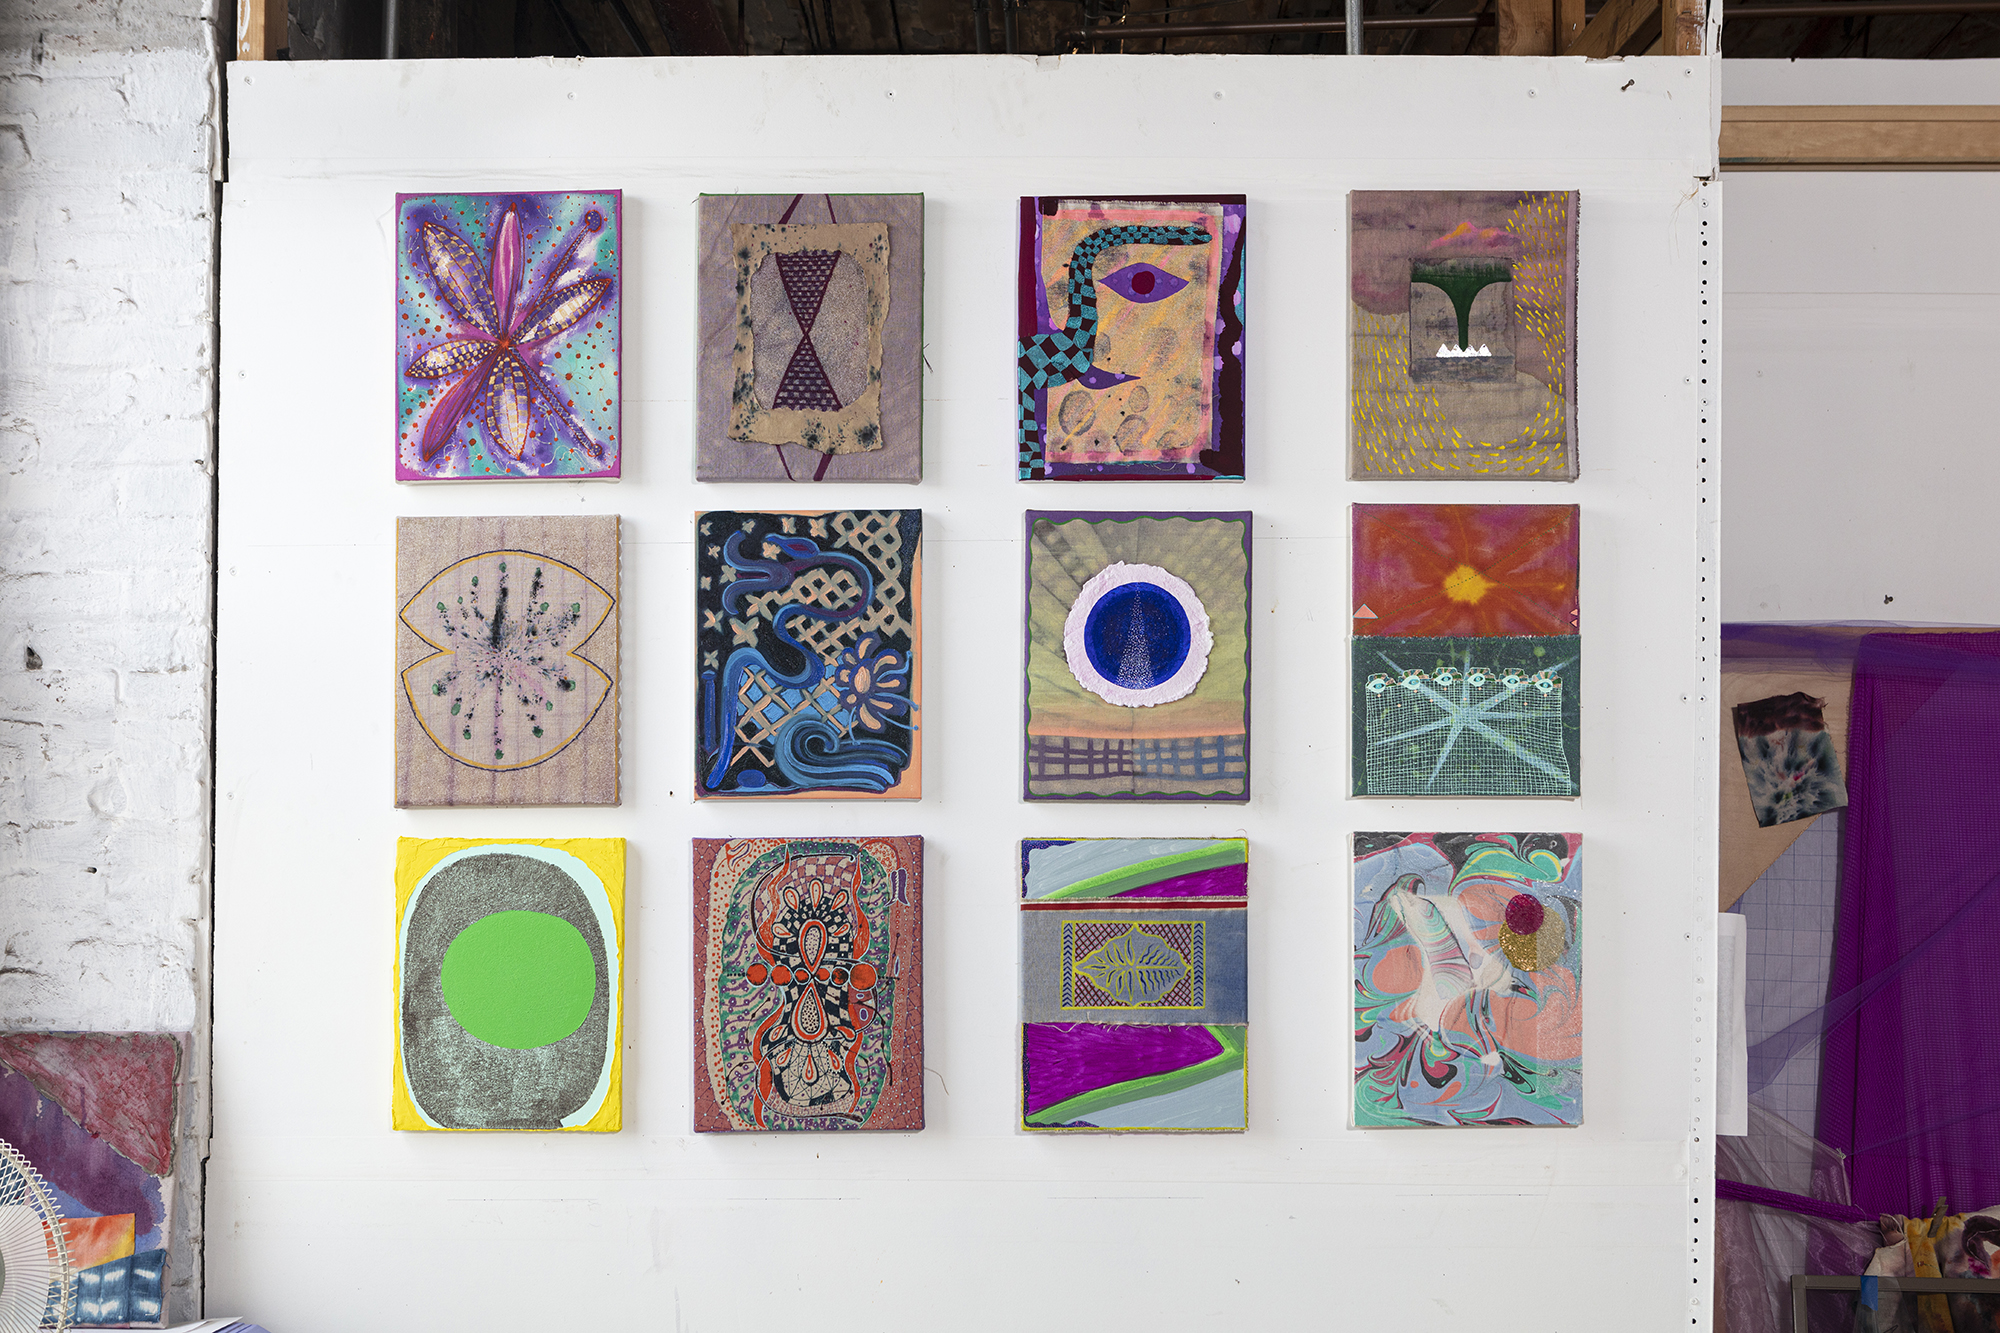 Natessa Amin,  Ceaseless Spectacle , 2017-2019. Mixed media on canvas and linen, series of 12, 11 x 14 inches each.